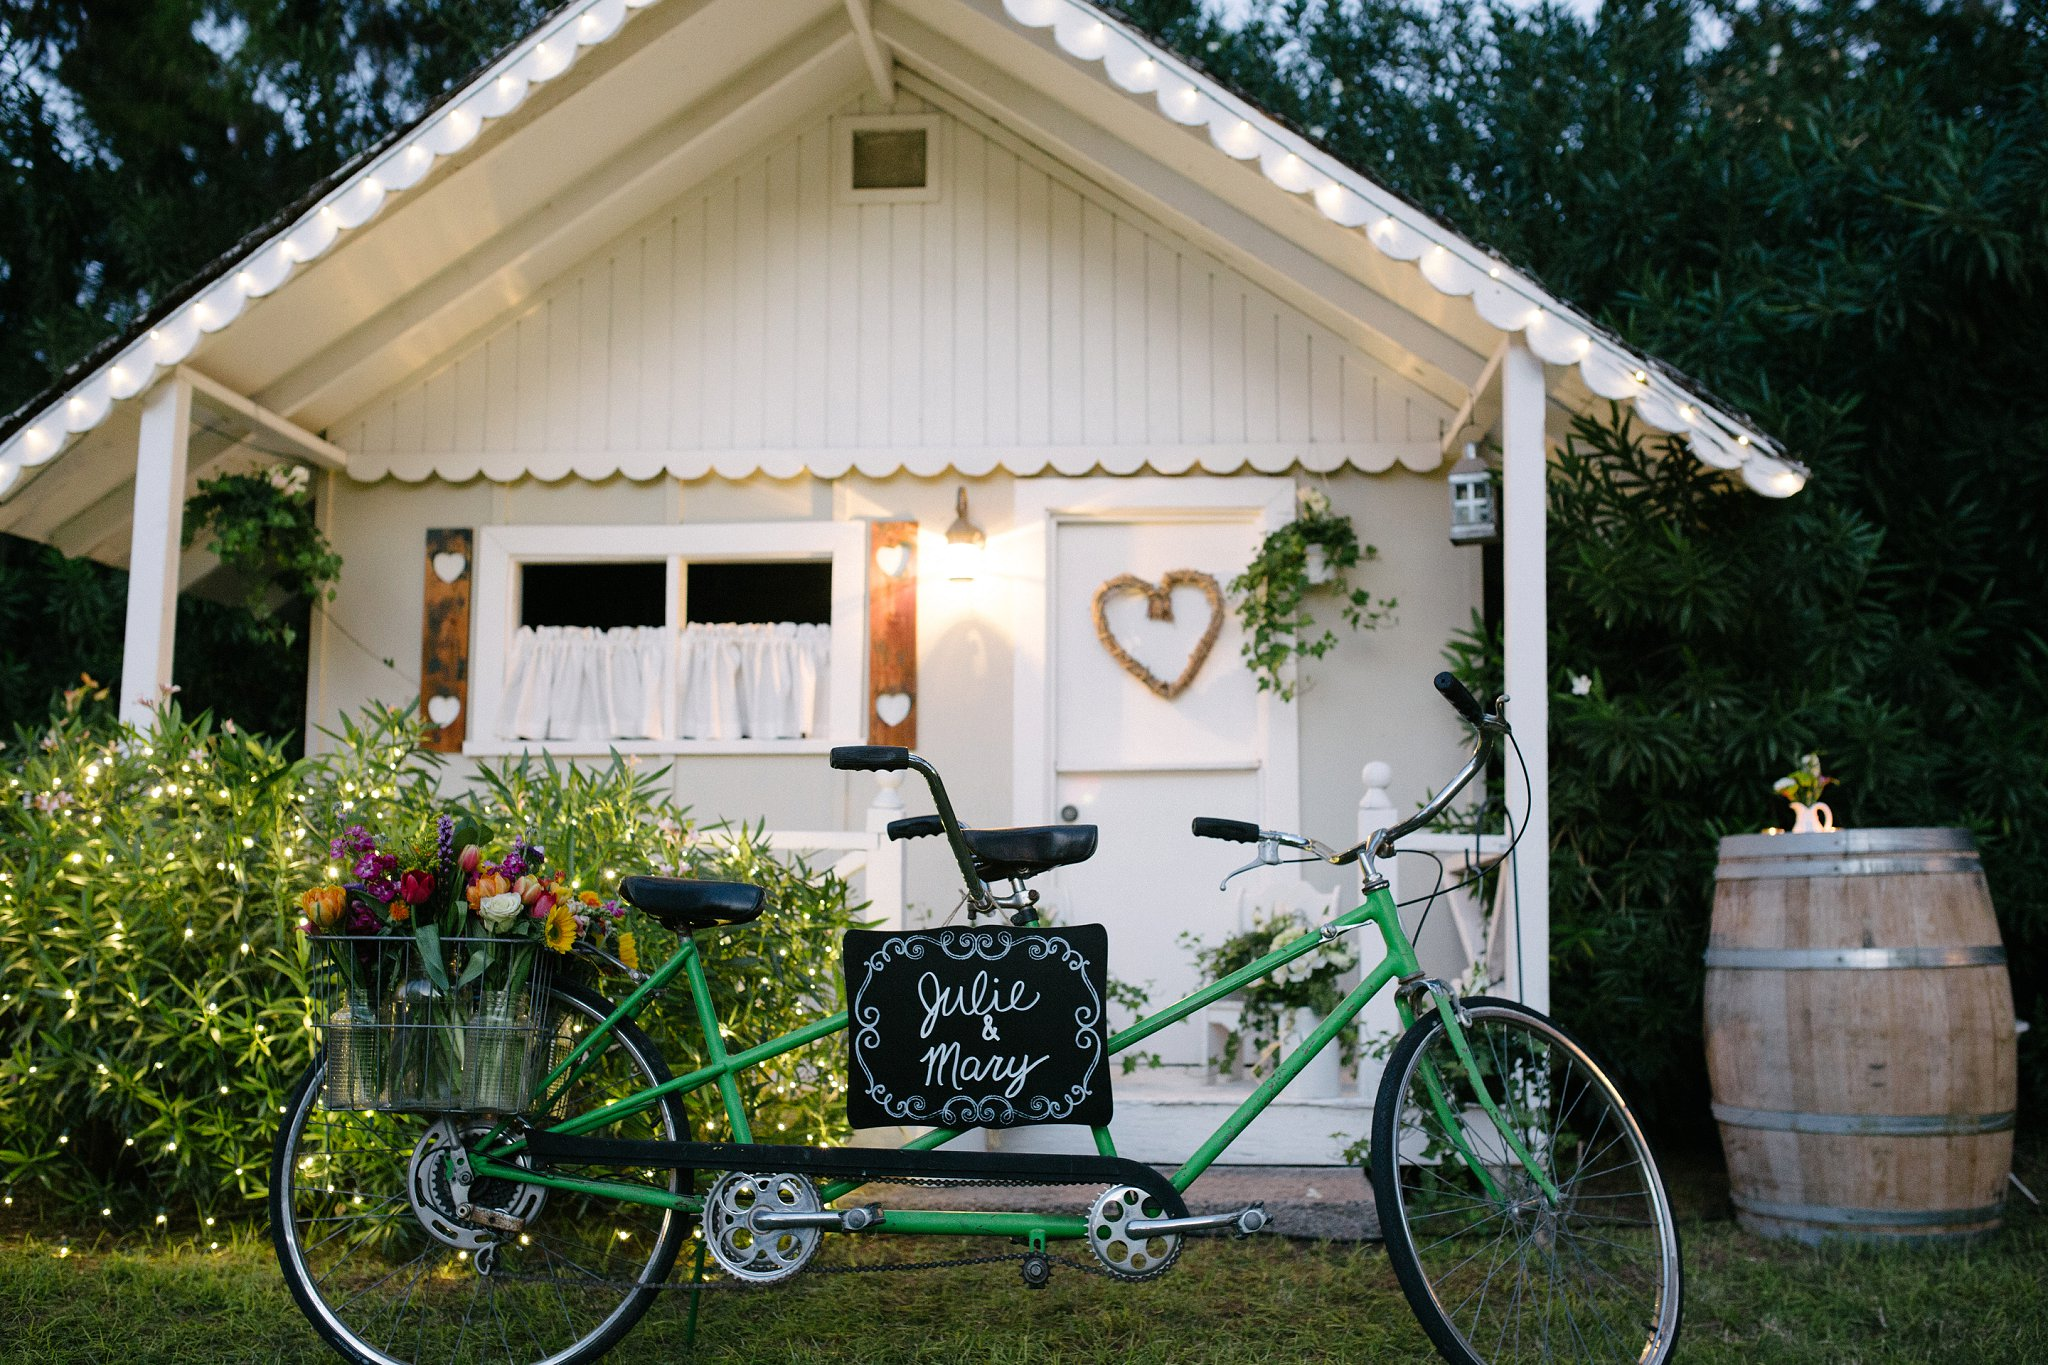 tandem bike in front of little white guest house with wedding signs in Arizona